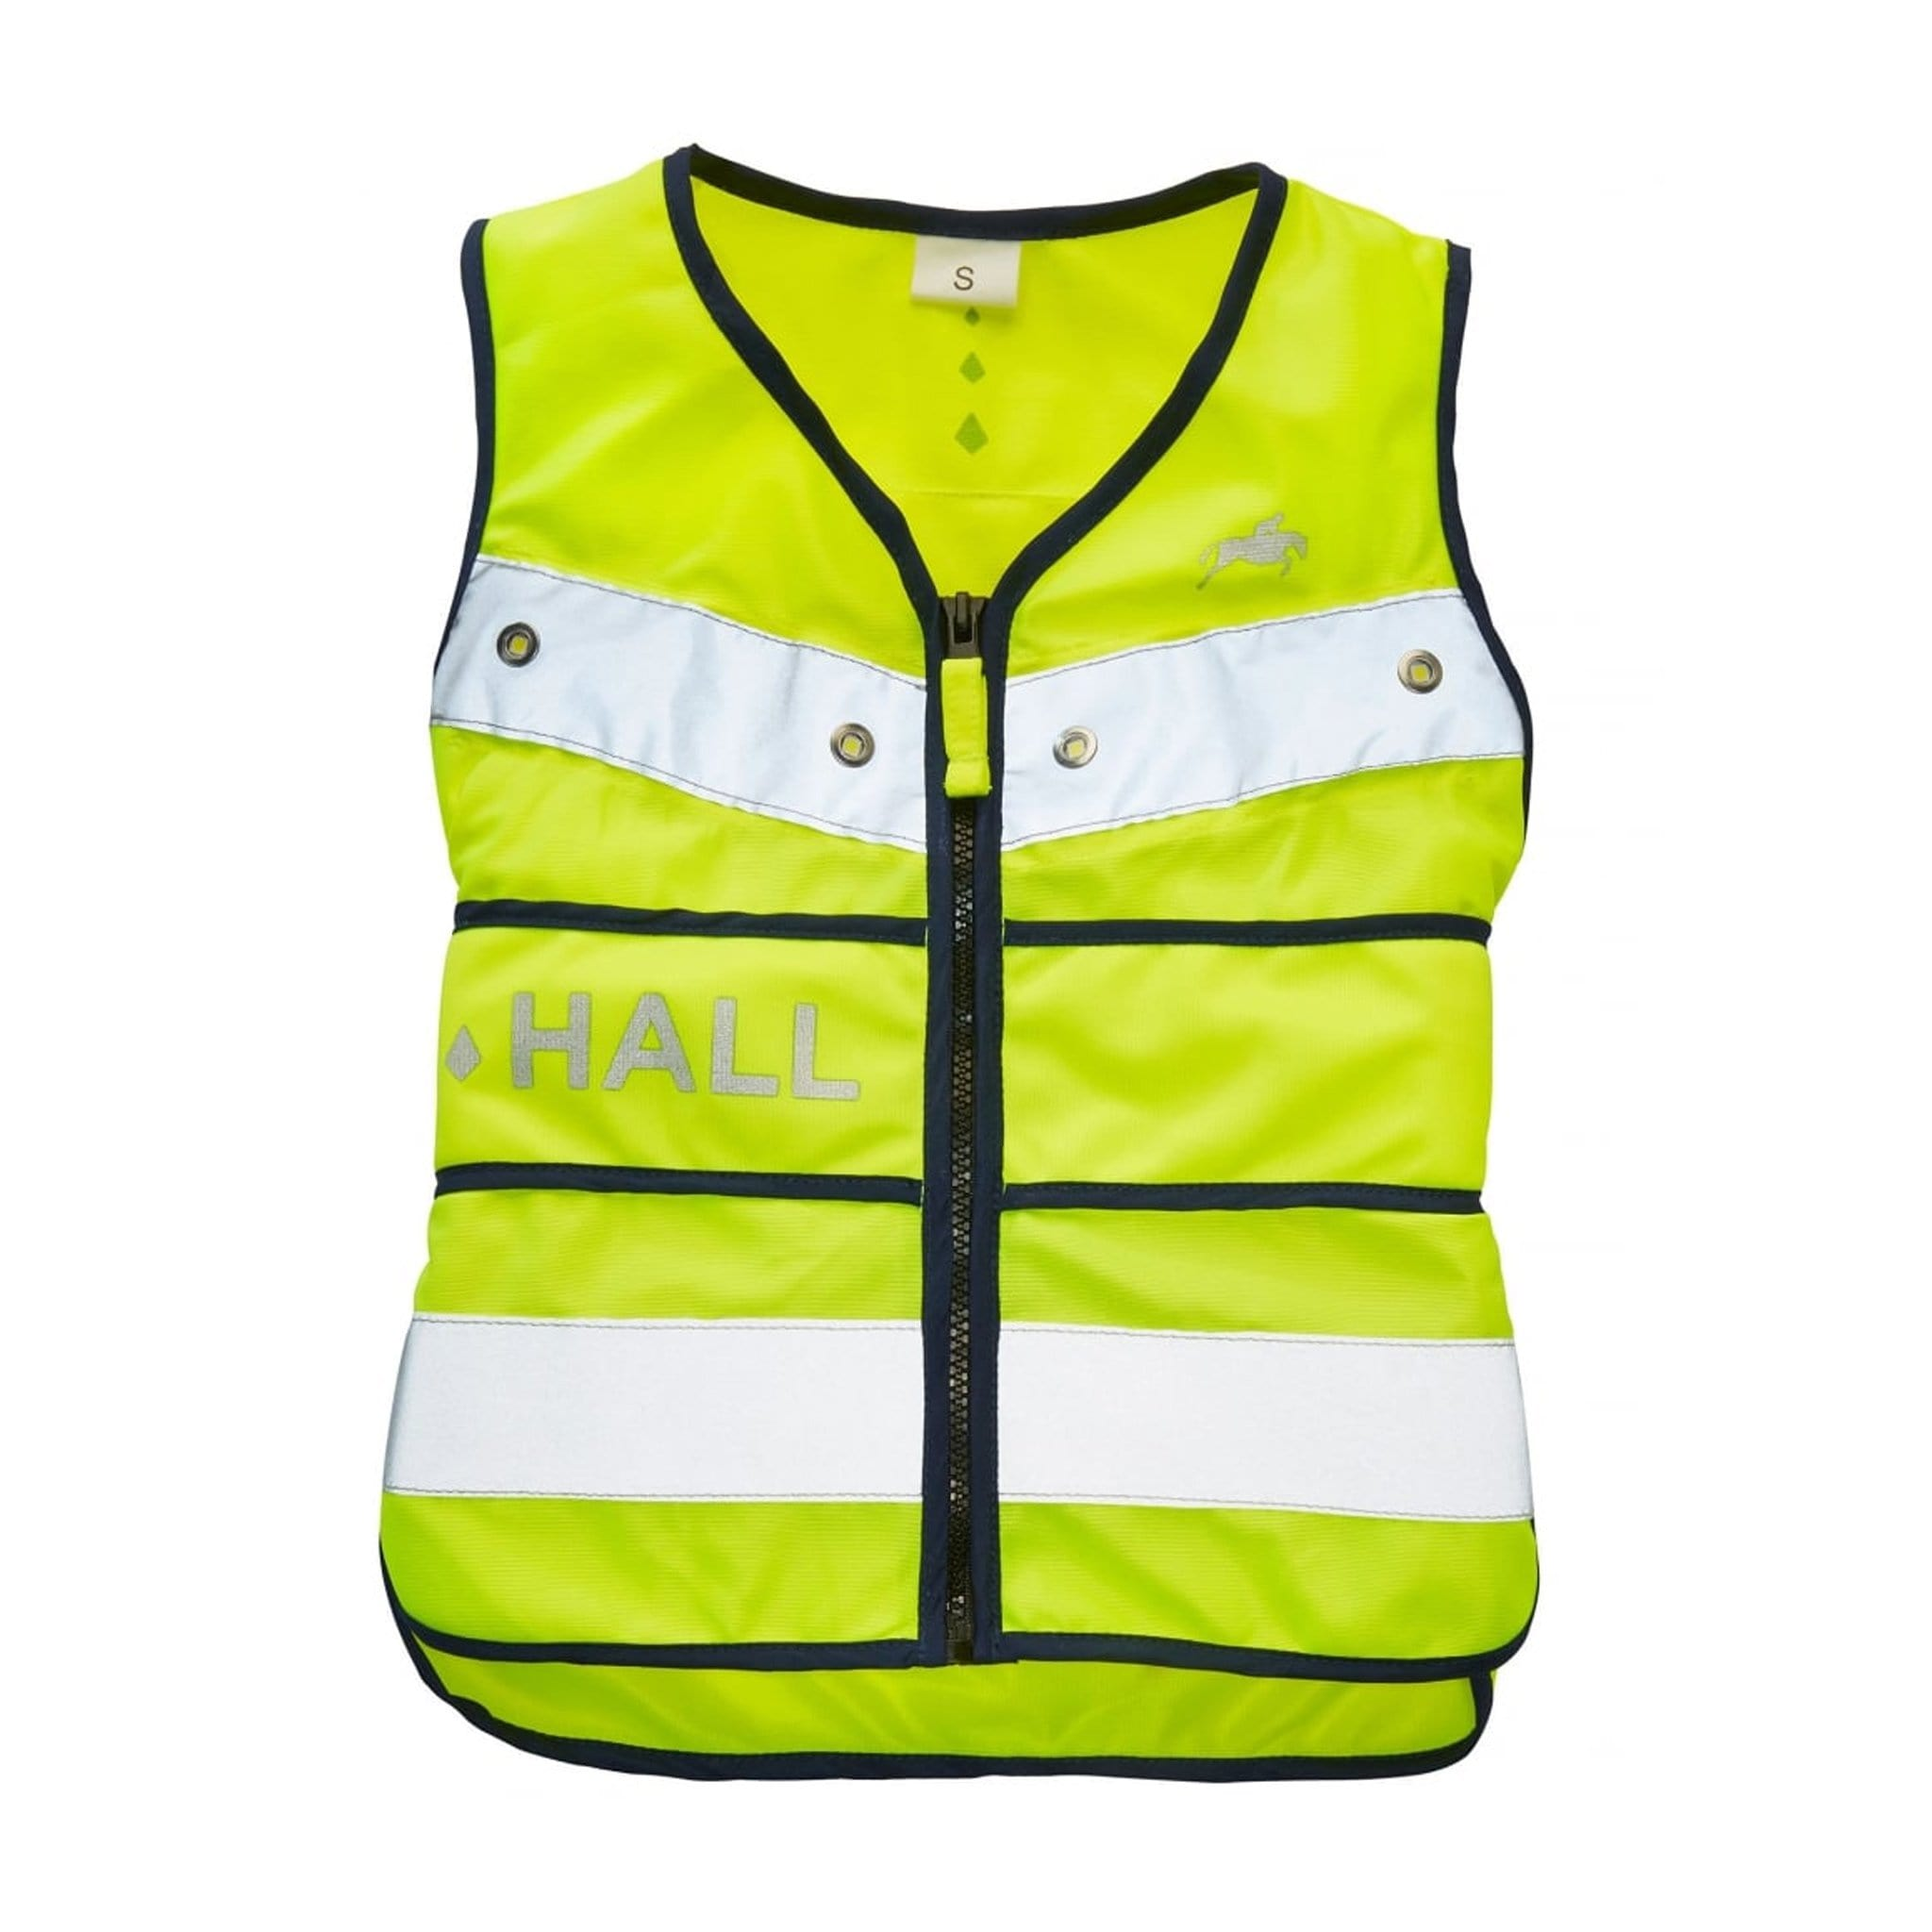 Harry Hall Hi Viz Adjustable Tabard Front View HHL1953 Studio